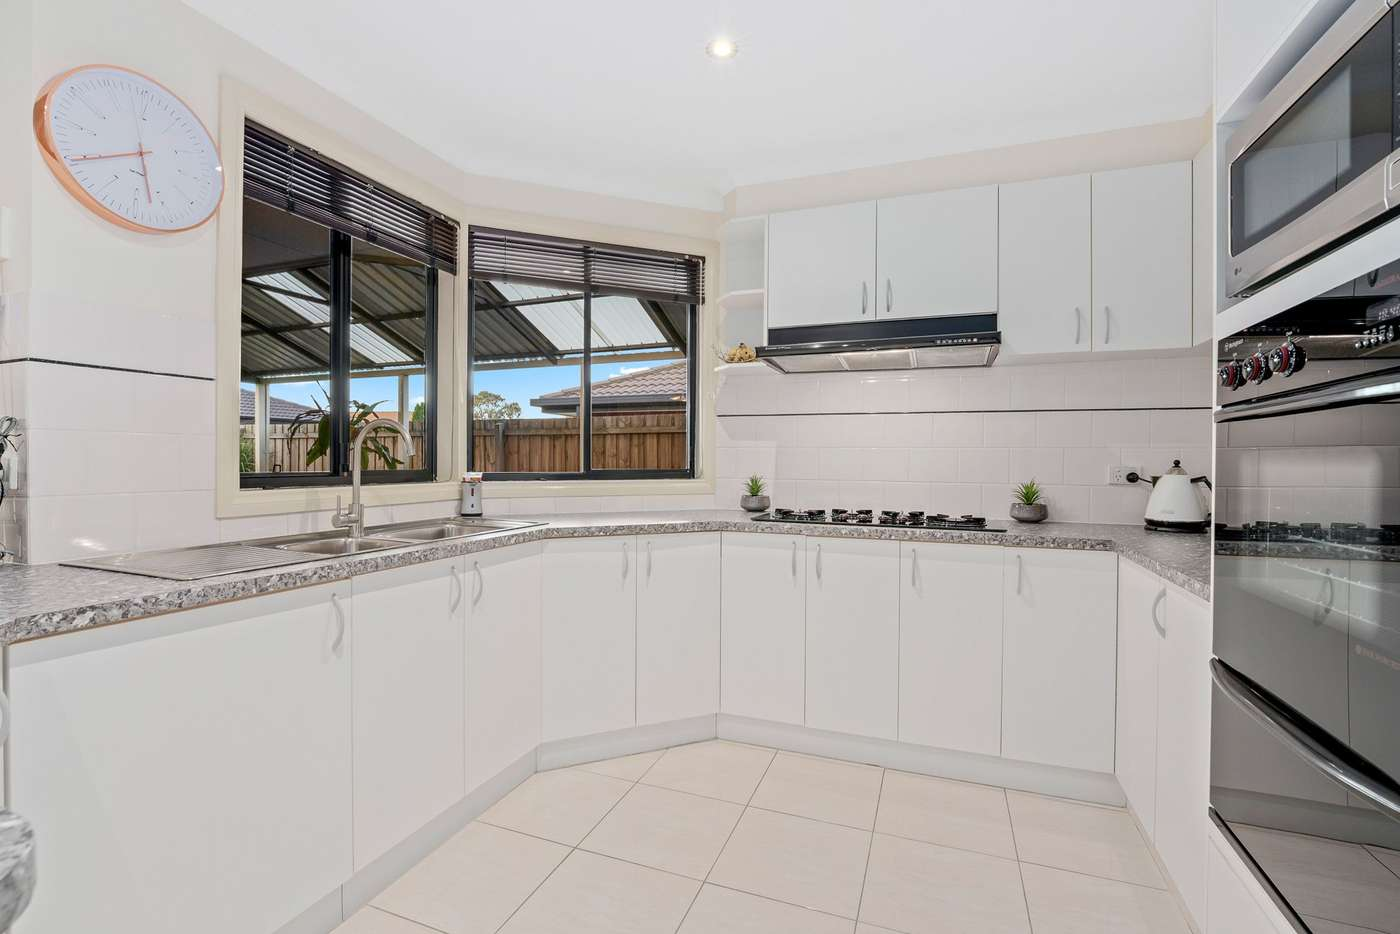 Fifth view of Homely house listing, 2 Darriwill Close, Delahey VIC 3037